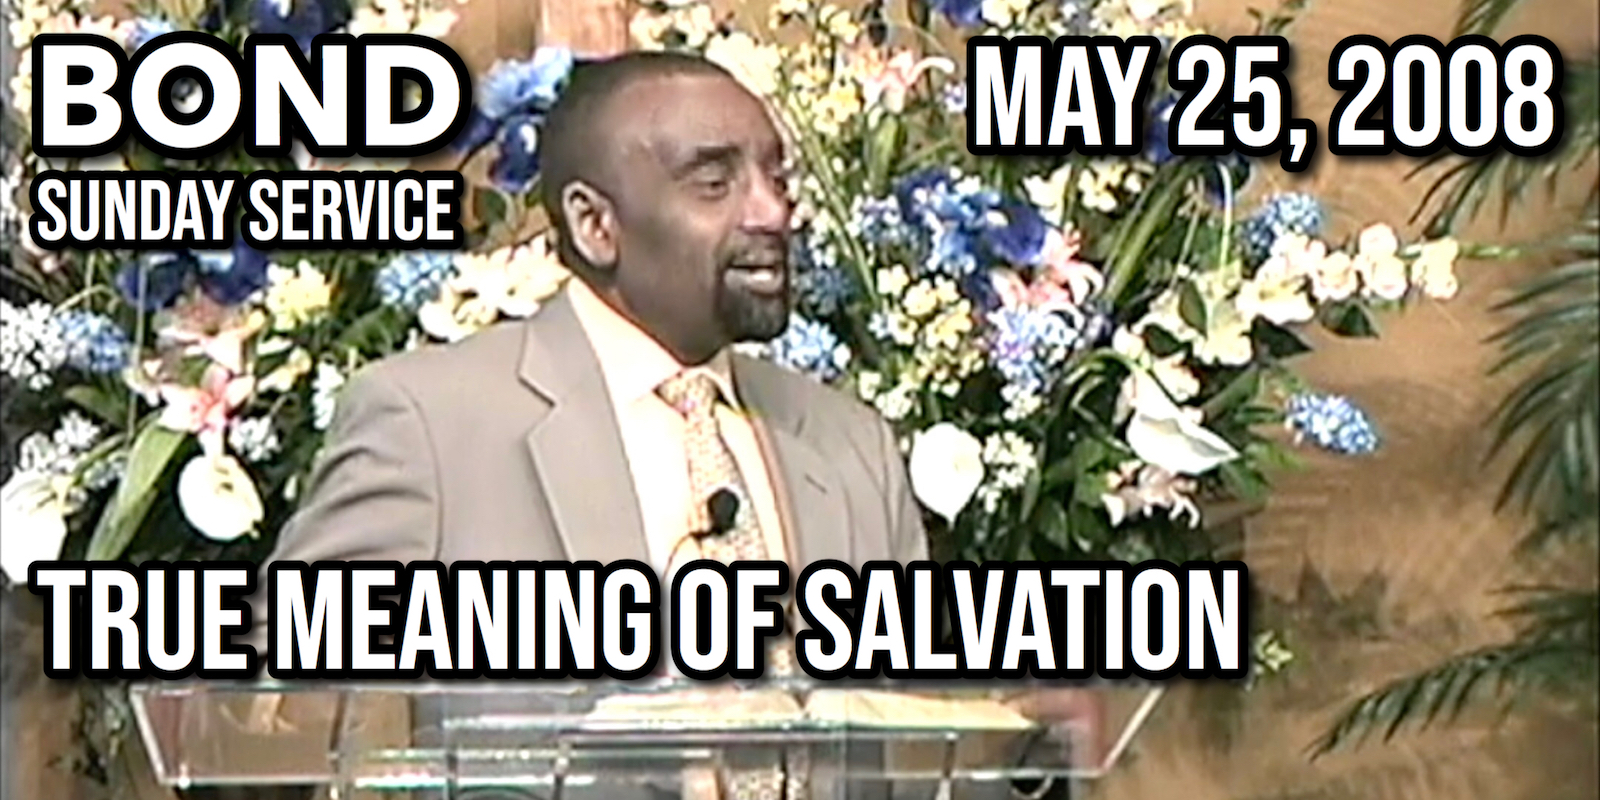 The True Meaning of Salvation (Sunday Service, May 25, 2008)